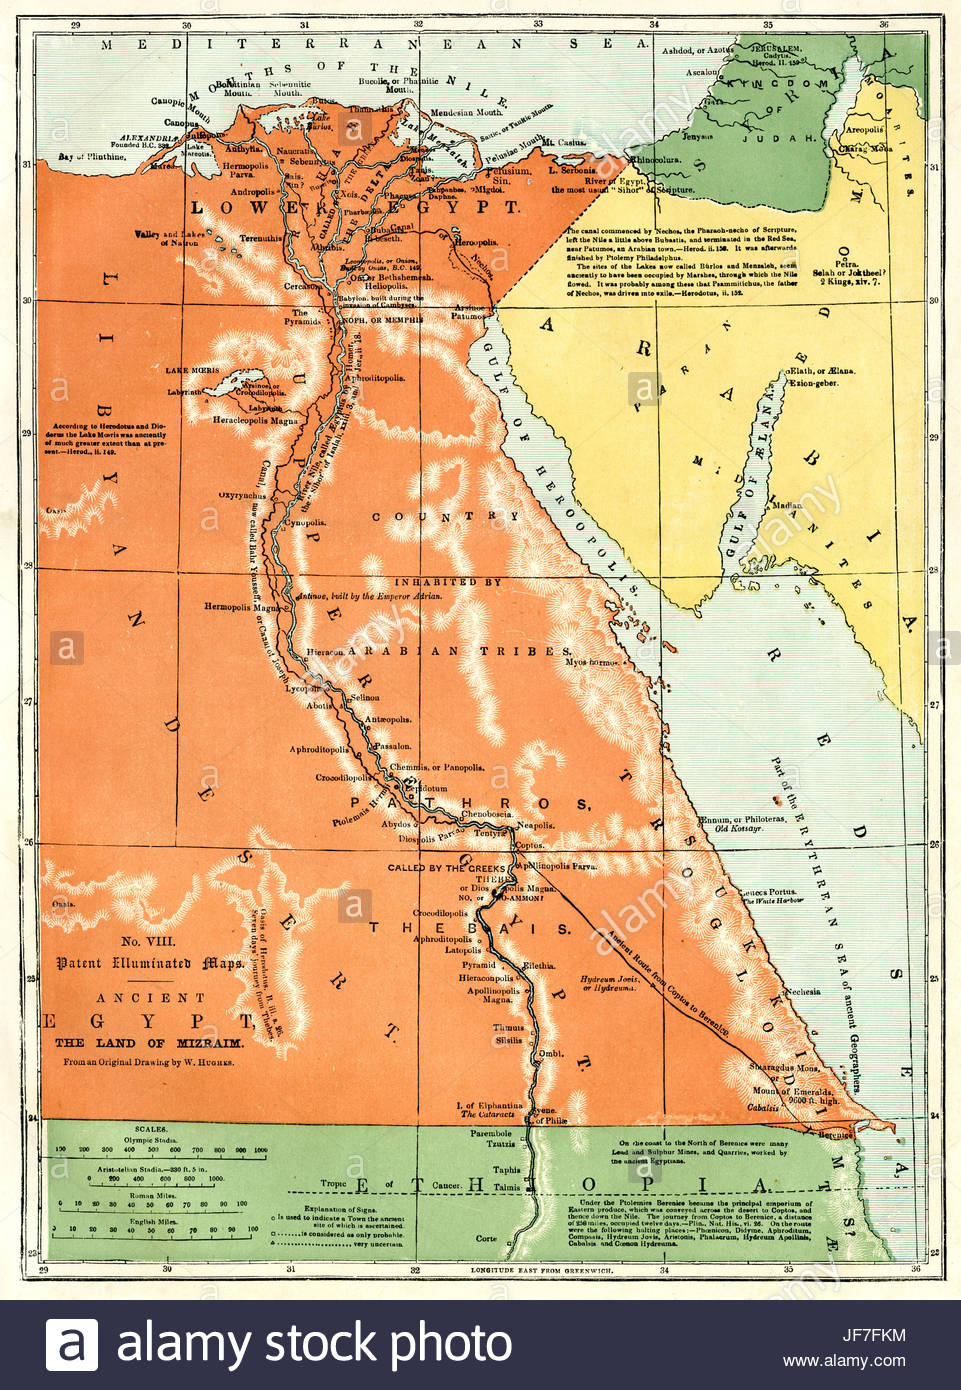 961x1390 Map Showing Ancient Egypt And The Land Of Mizraim. From Original